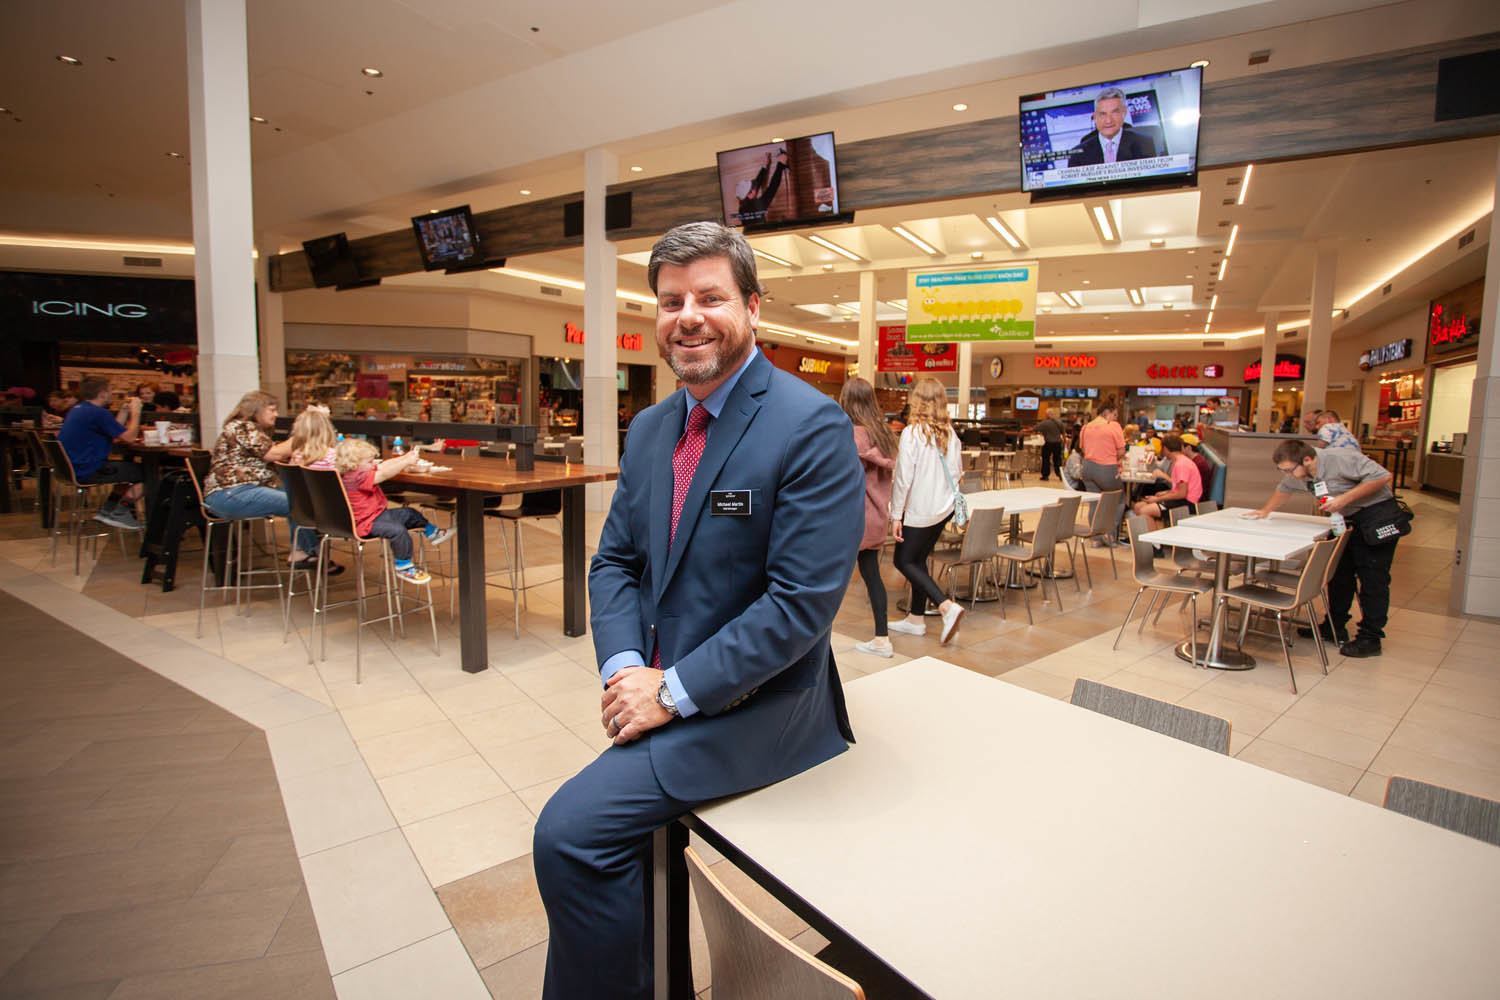 RETAIL RENOVATION: The Battlefield Mall made improvements to its dining pavilion this year, which included the addition of TVs, charging stations and modern furniture, says General Manager Michael Martin.